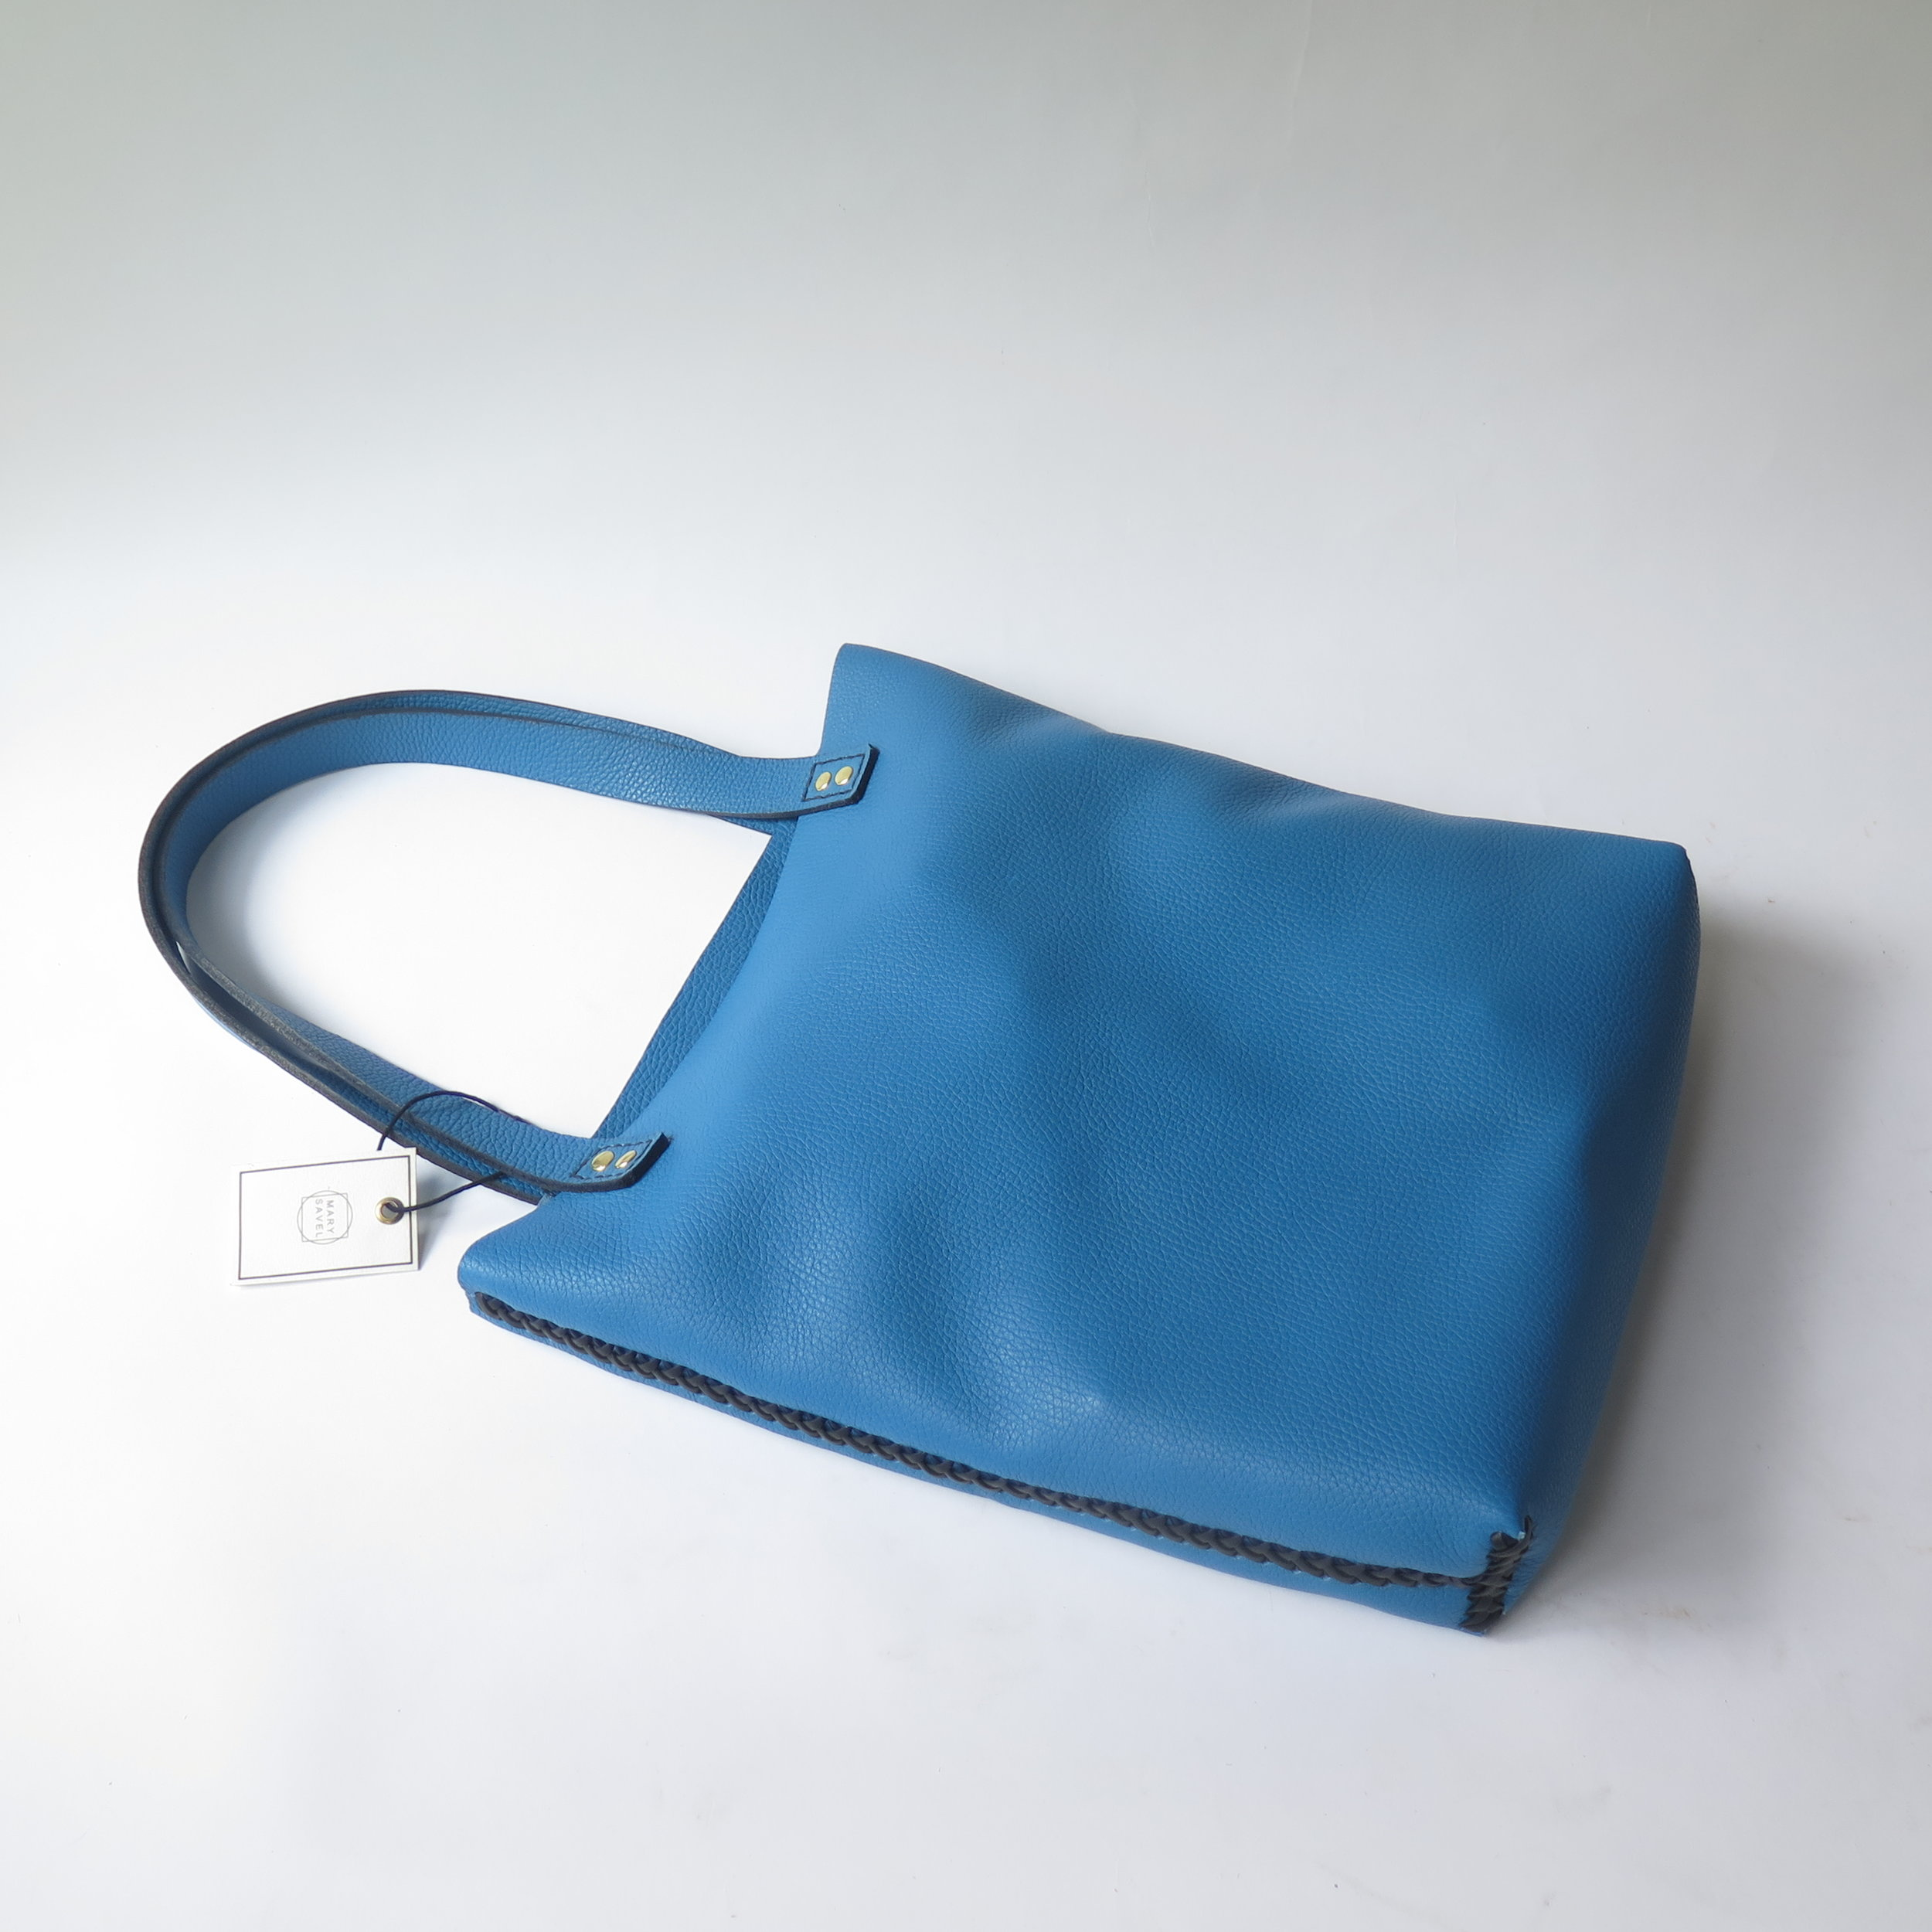 mary-savel-leather-tote-blue-with-black-lacing-4.JPG